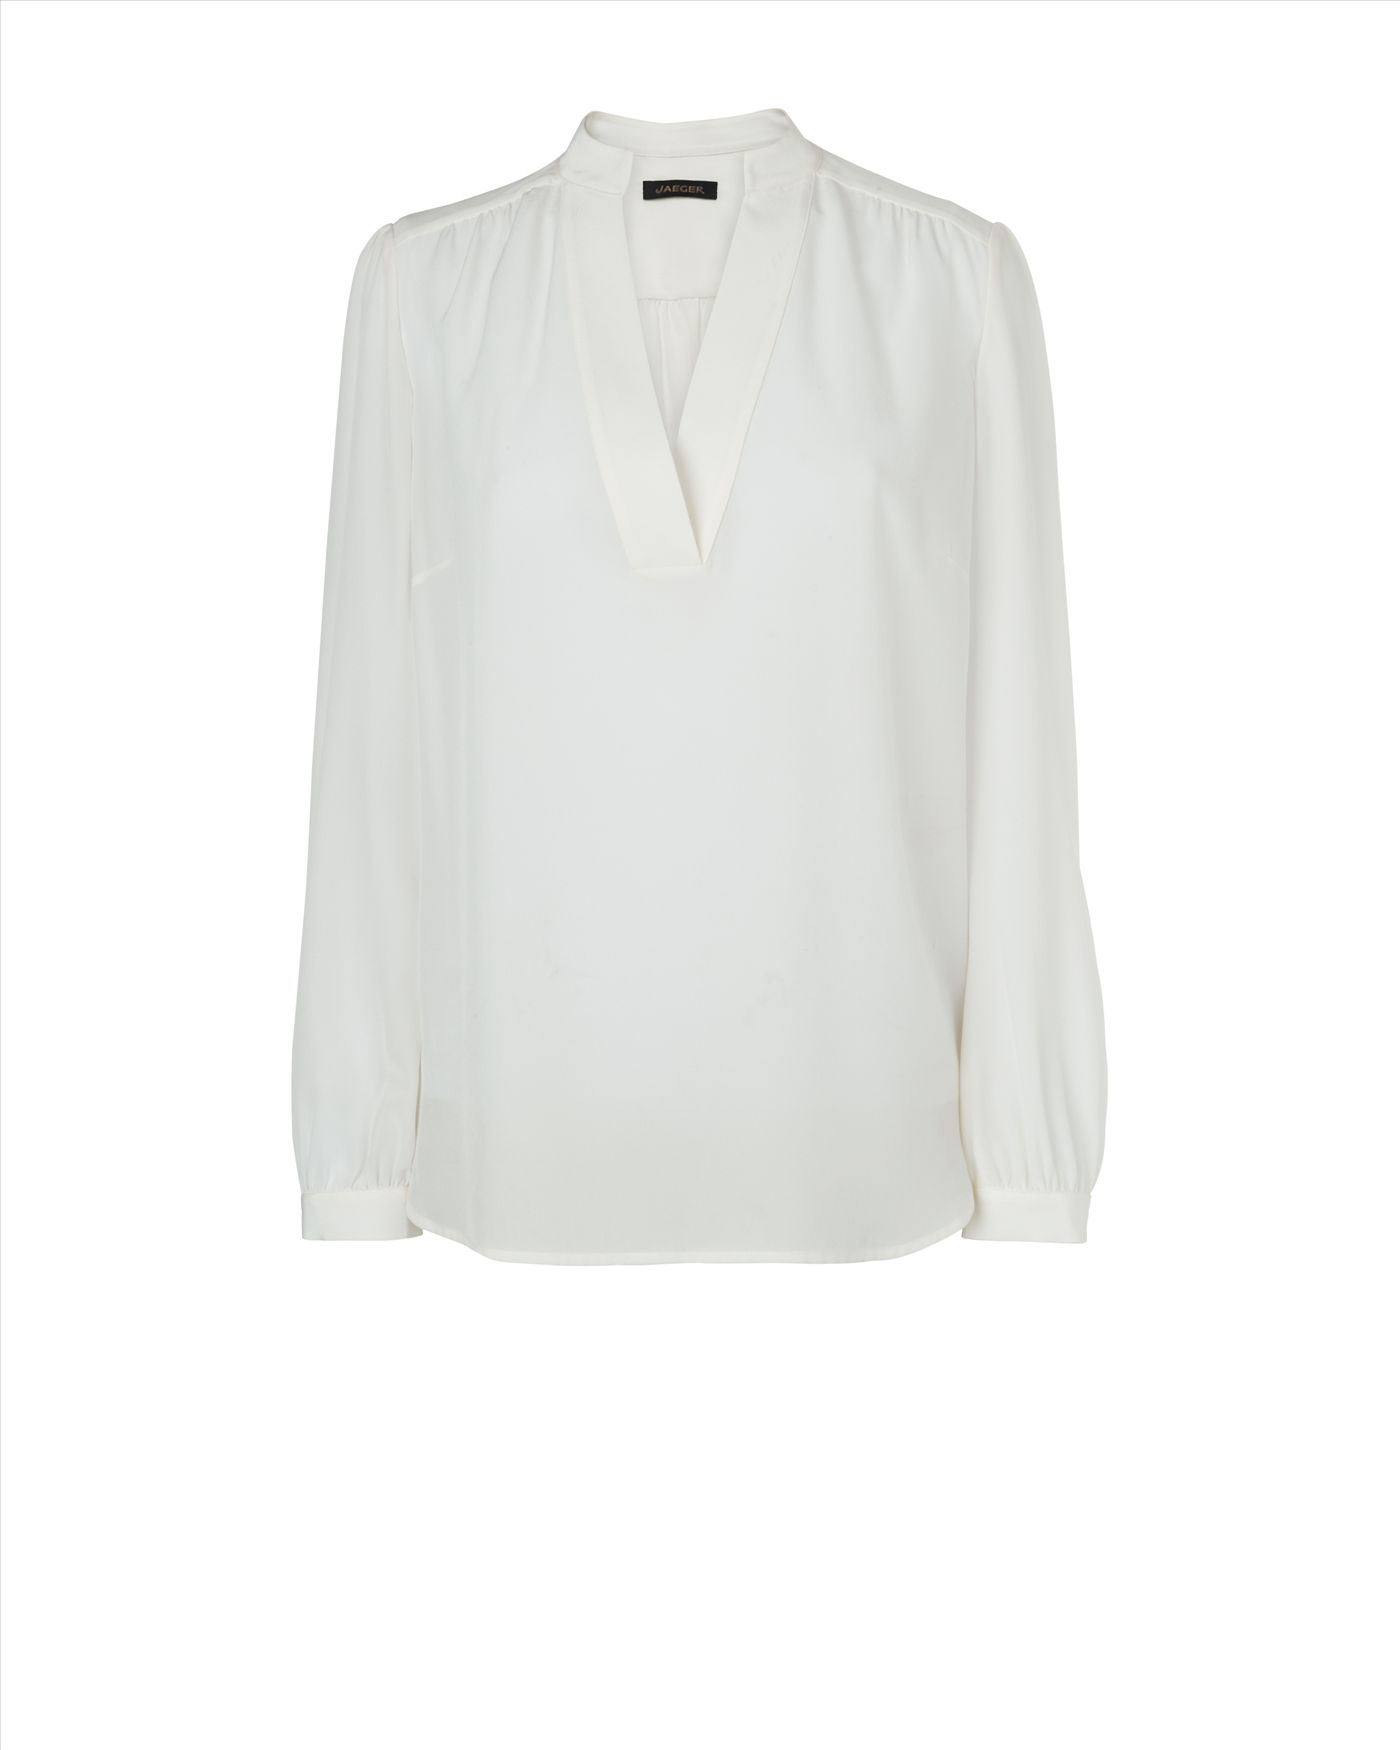 Stand Neck Blouse Designs : Jaeger v neck stand collar blouse in white ivory lyst